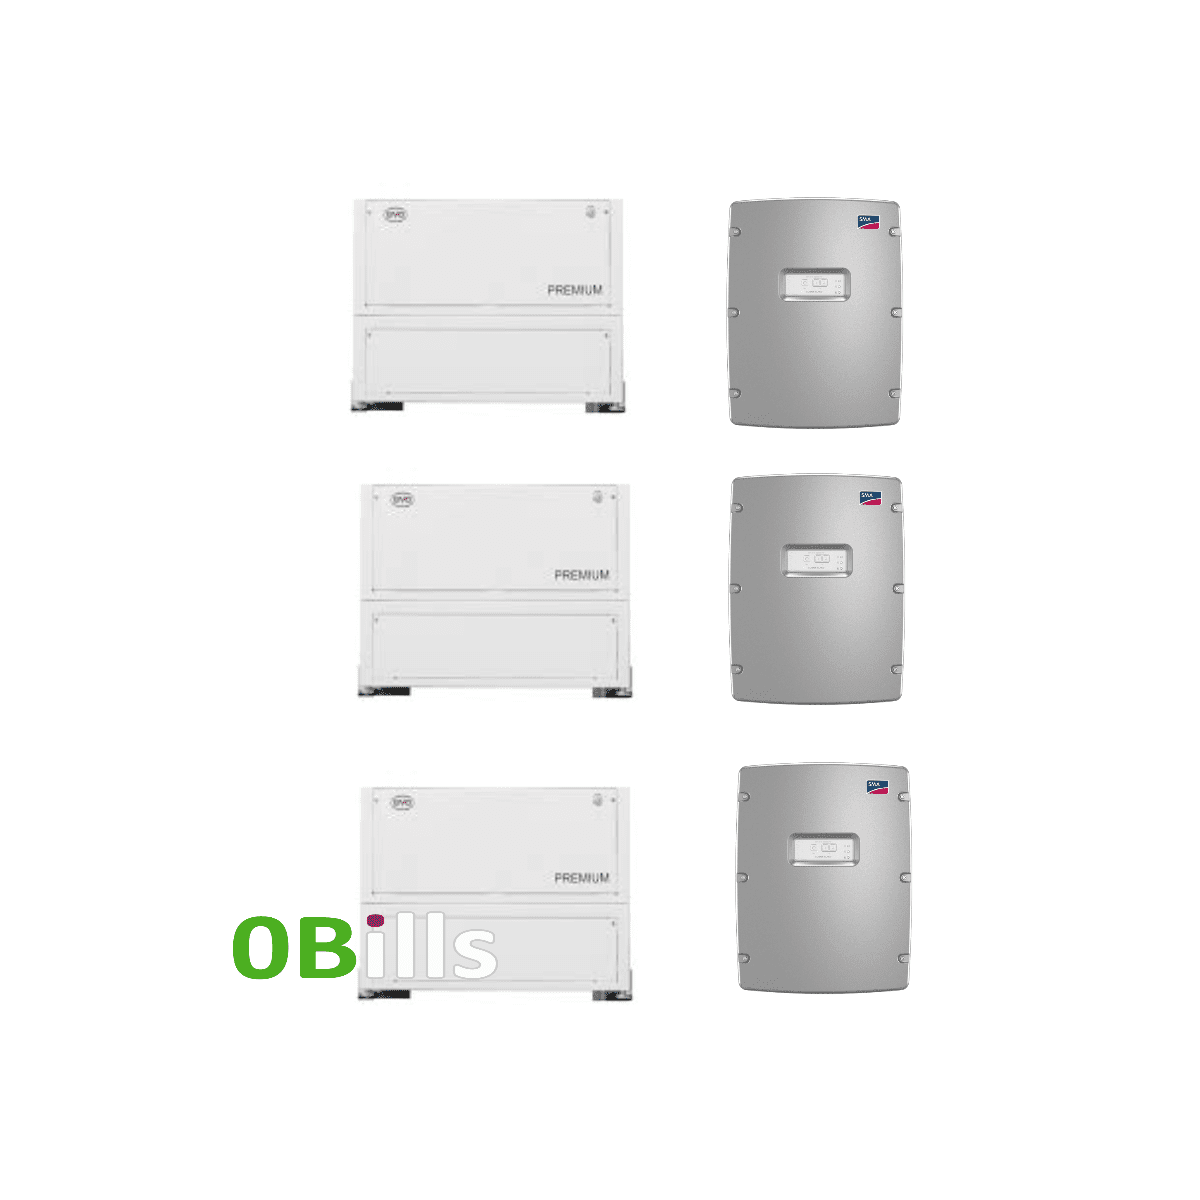 BYD LVL 46.08kWh Lithium-Ion Solar Battery Storage System